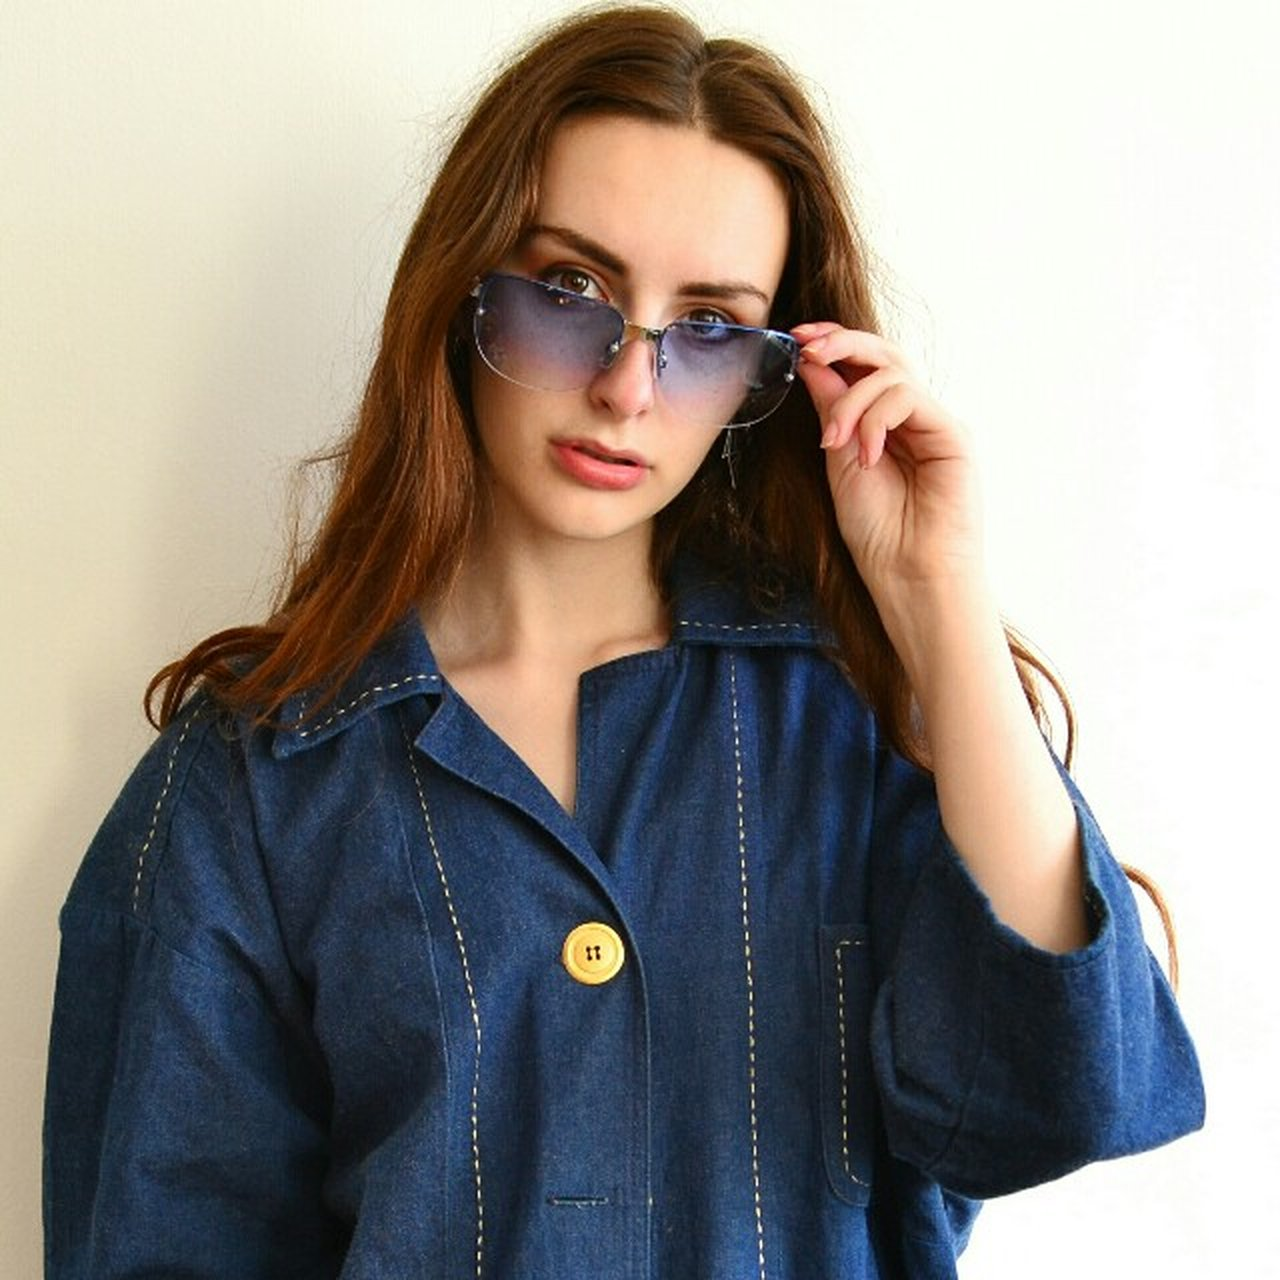 813522c165 Deadstock 2000s blue tinted sunglasses